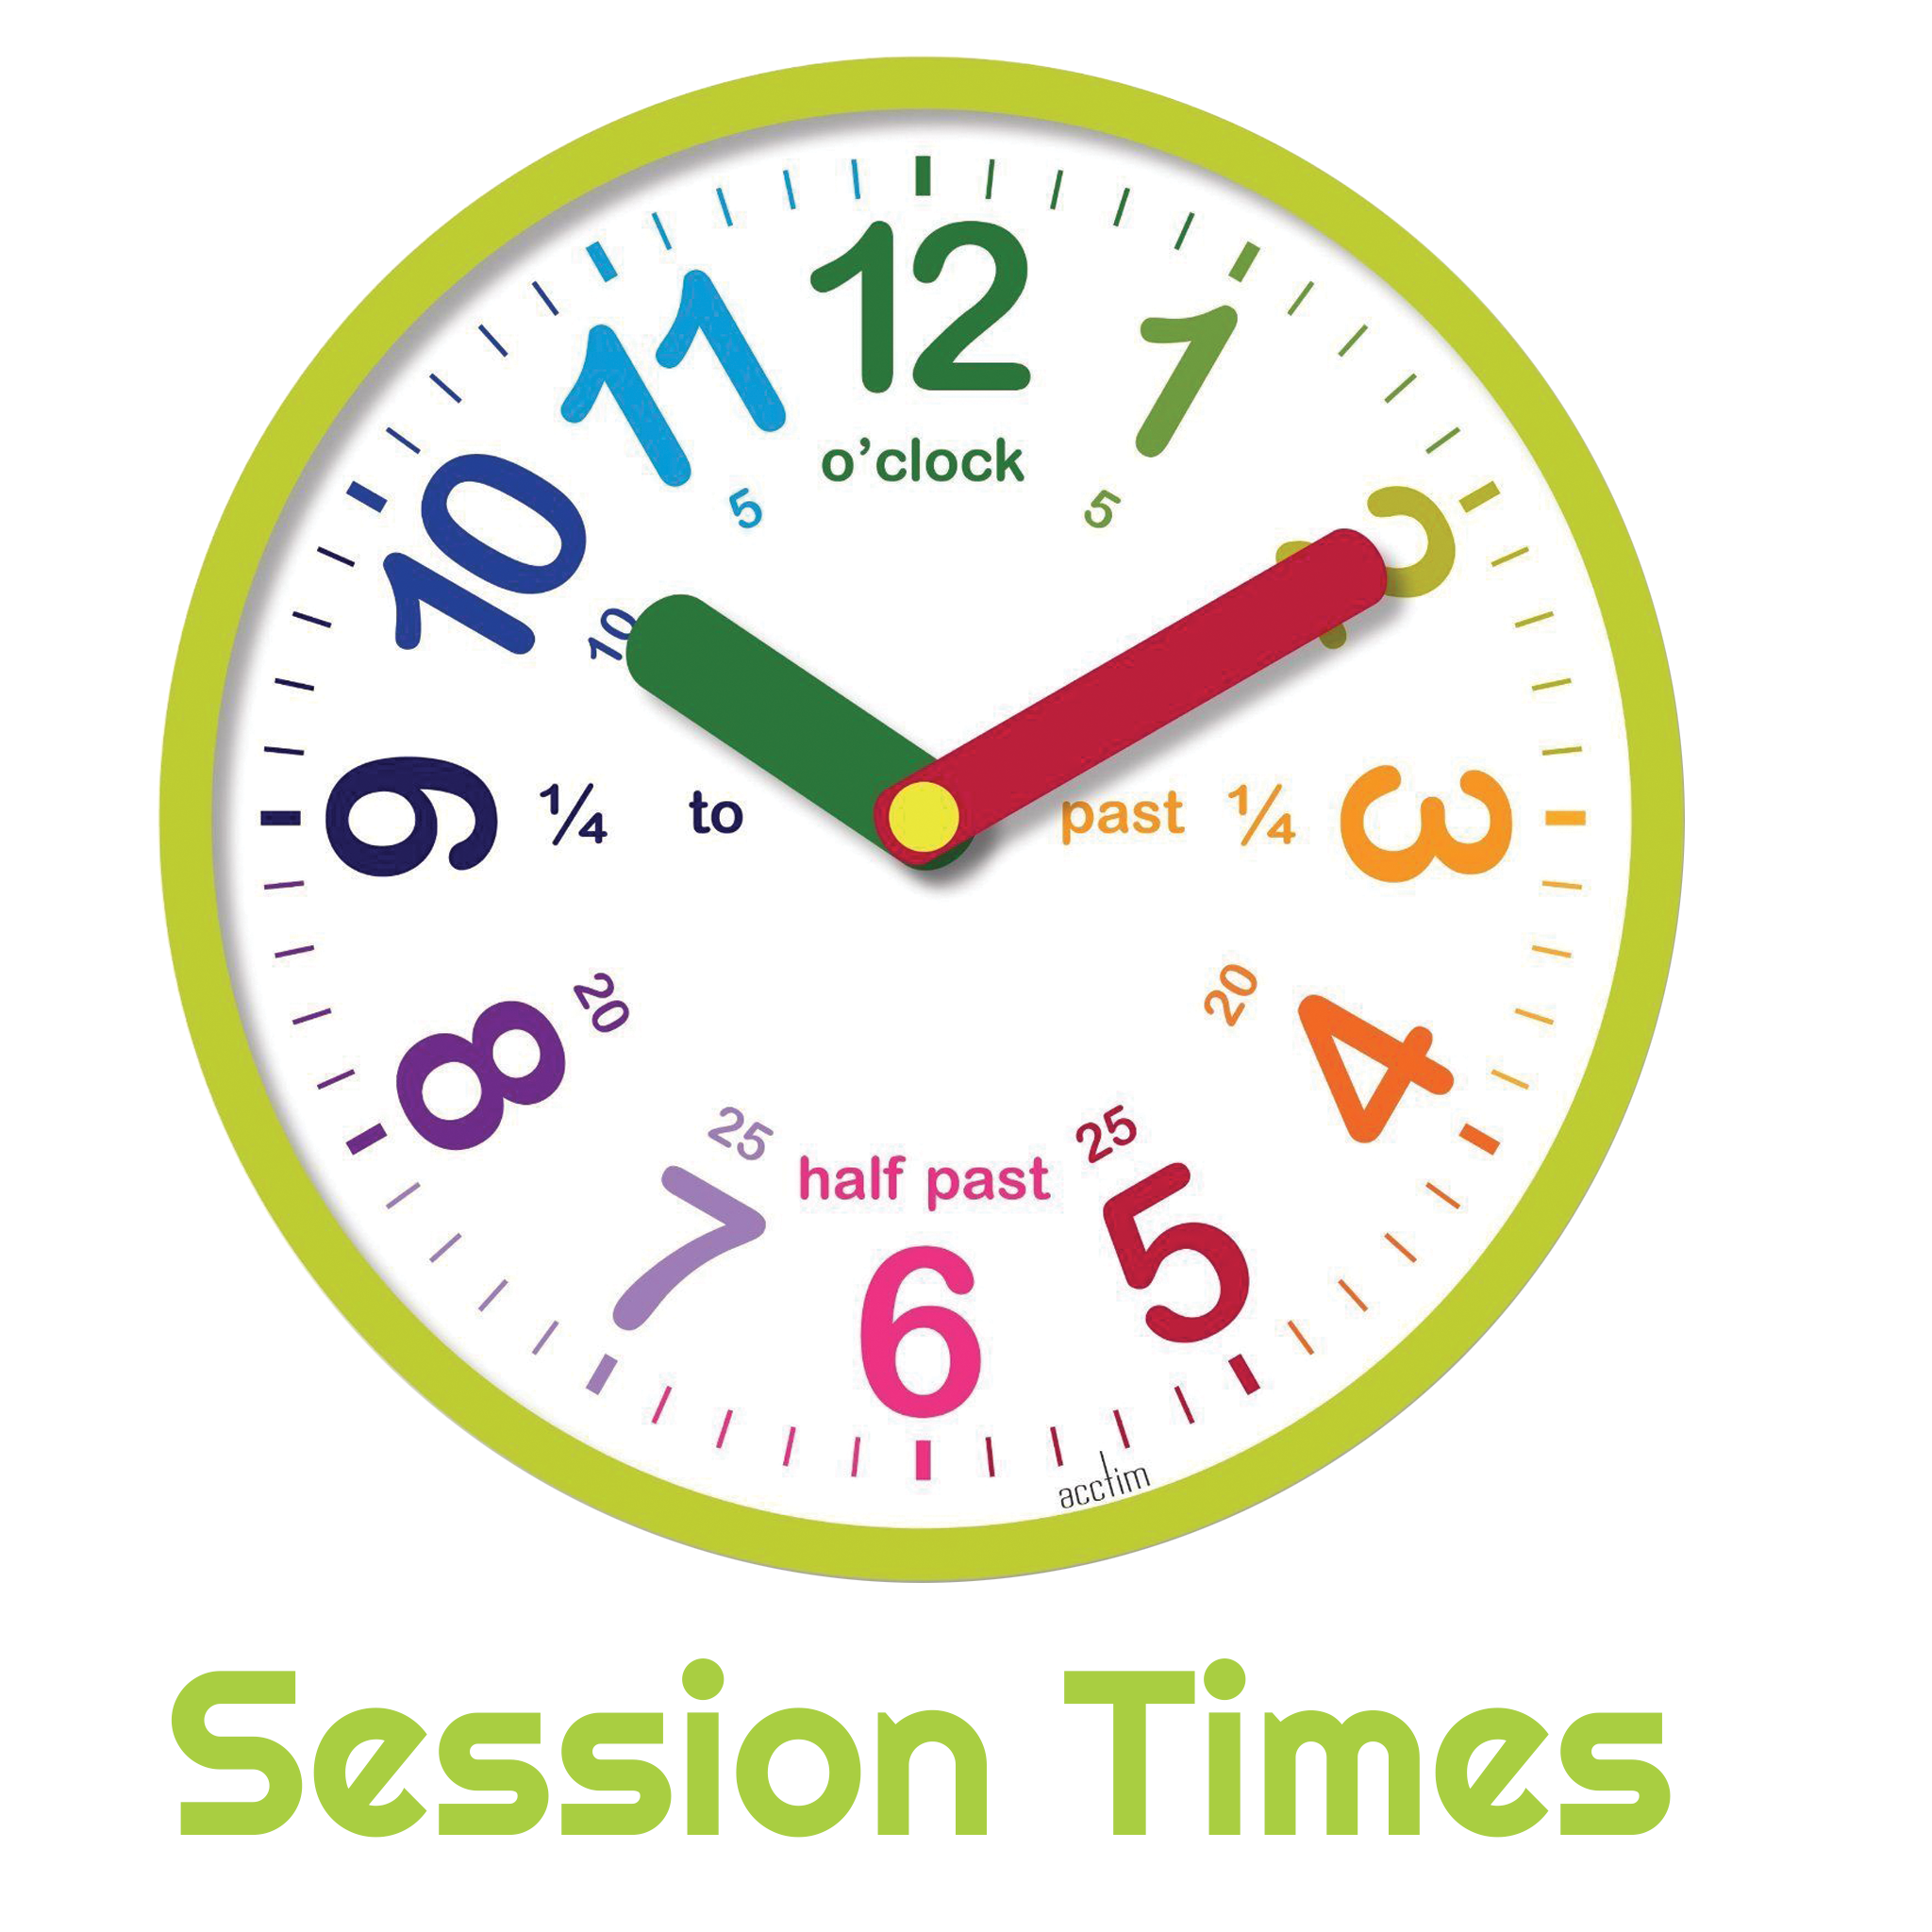 OPS_Session Times.png